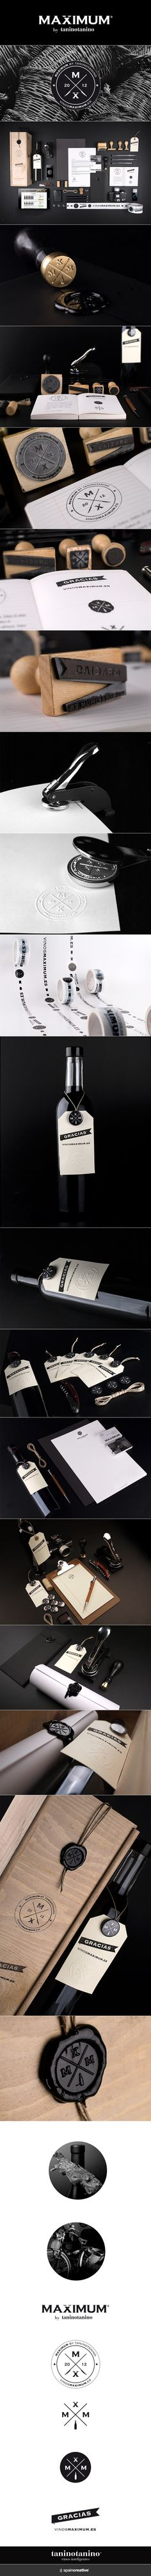 MAXIMUM BY TANINOTANINO - SPAINCREATIVE identity and packaging